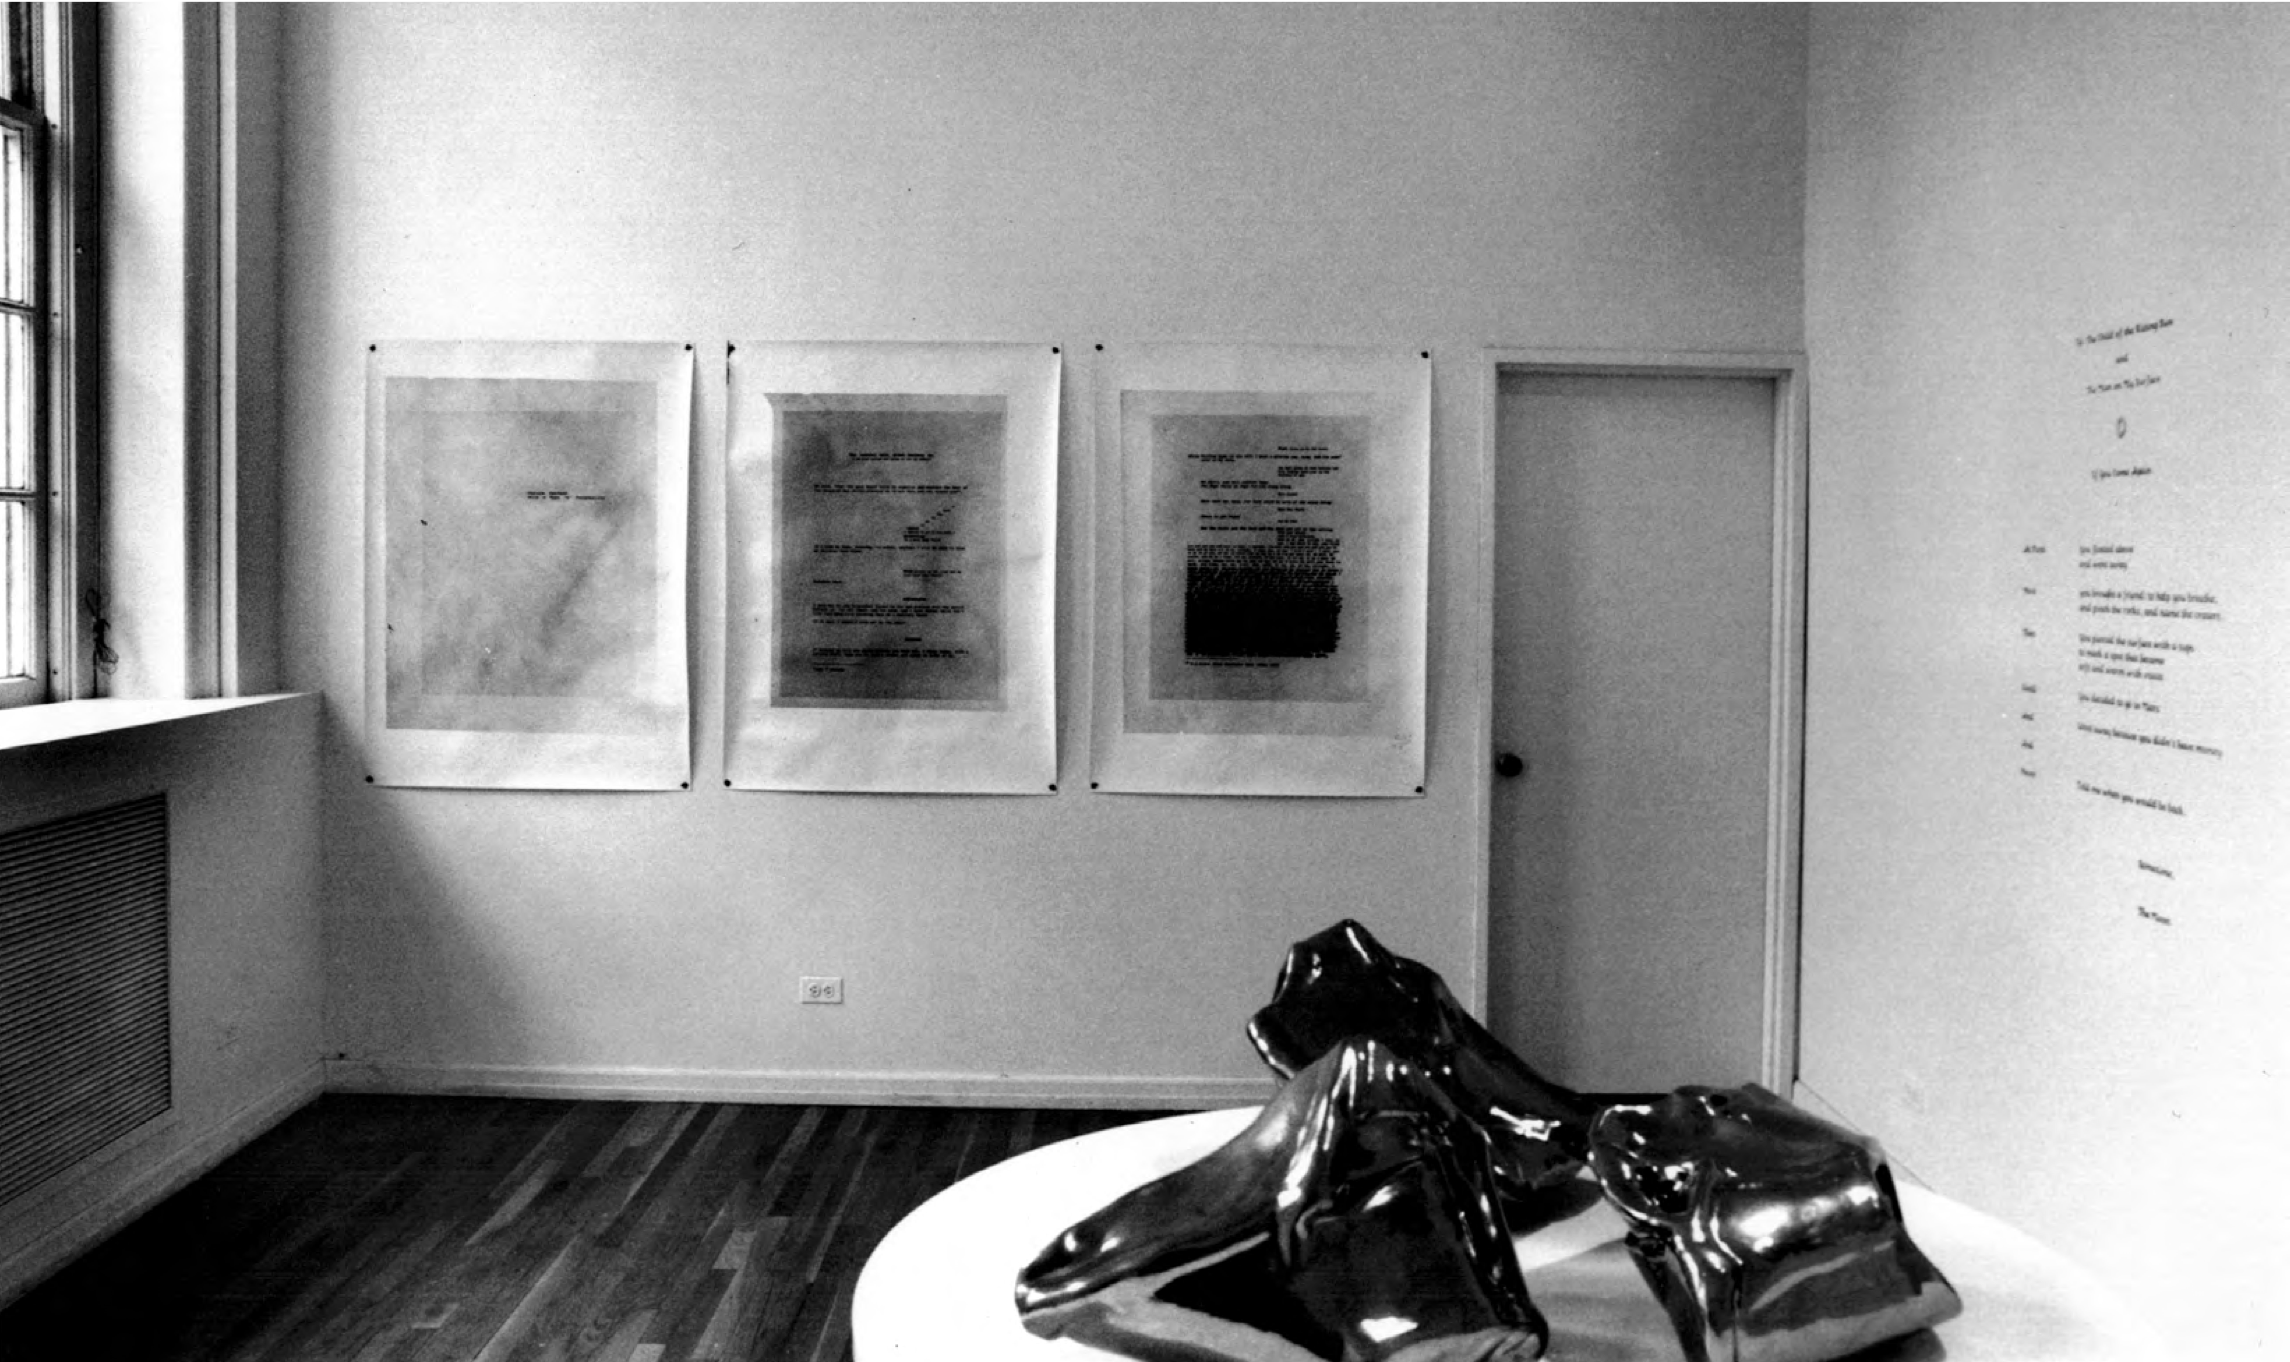 Installation view, Dear Mr. Armstrong, Katy Schimert at Janice Guy, New York, 1995. Courtesy of Murray Guy.